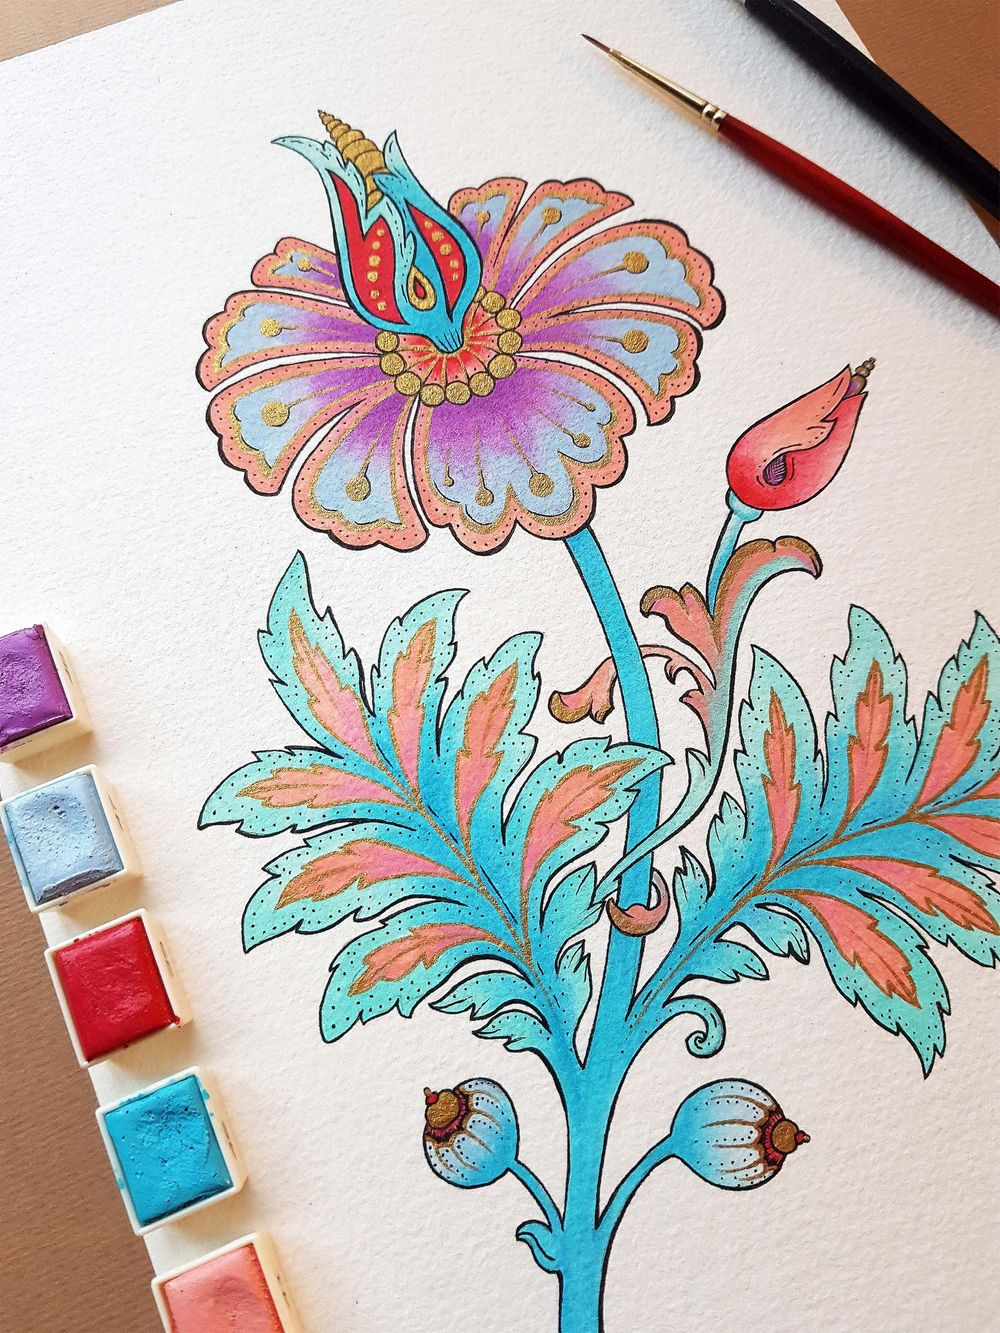 Mixed media whimsical flower - image 5 - student project